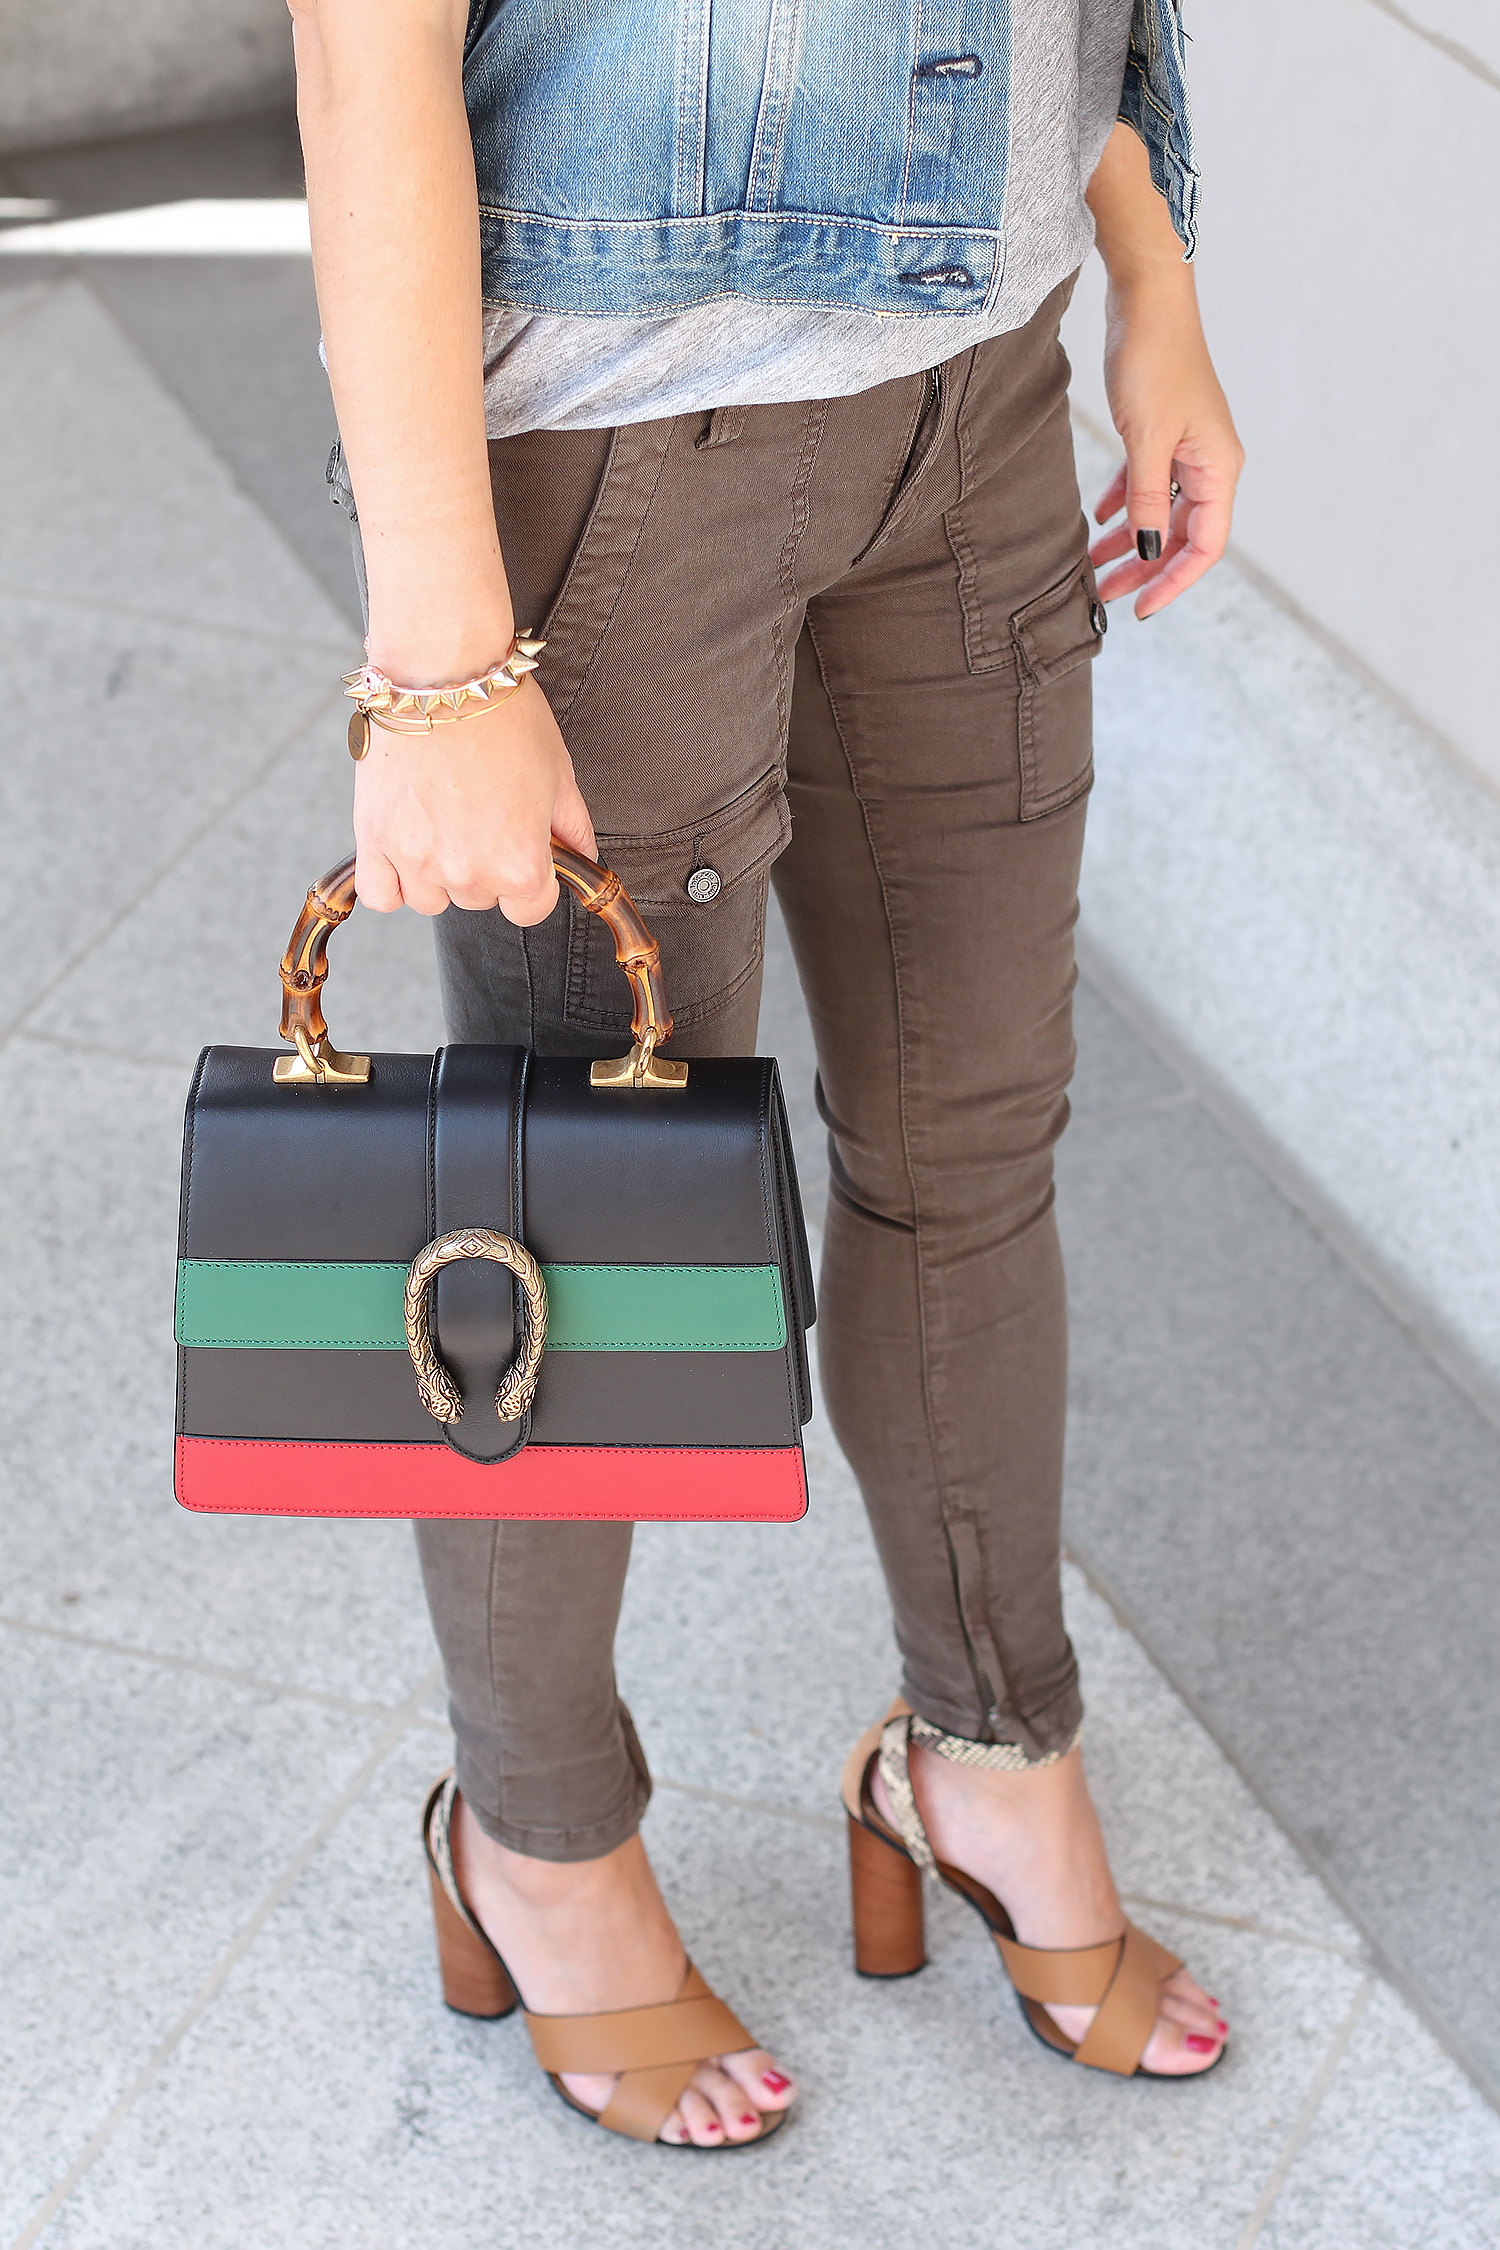 Gucci Dionysus Bag, Bamboo Handle